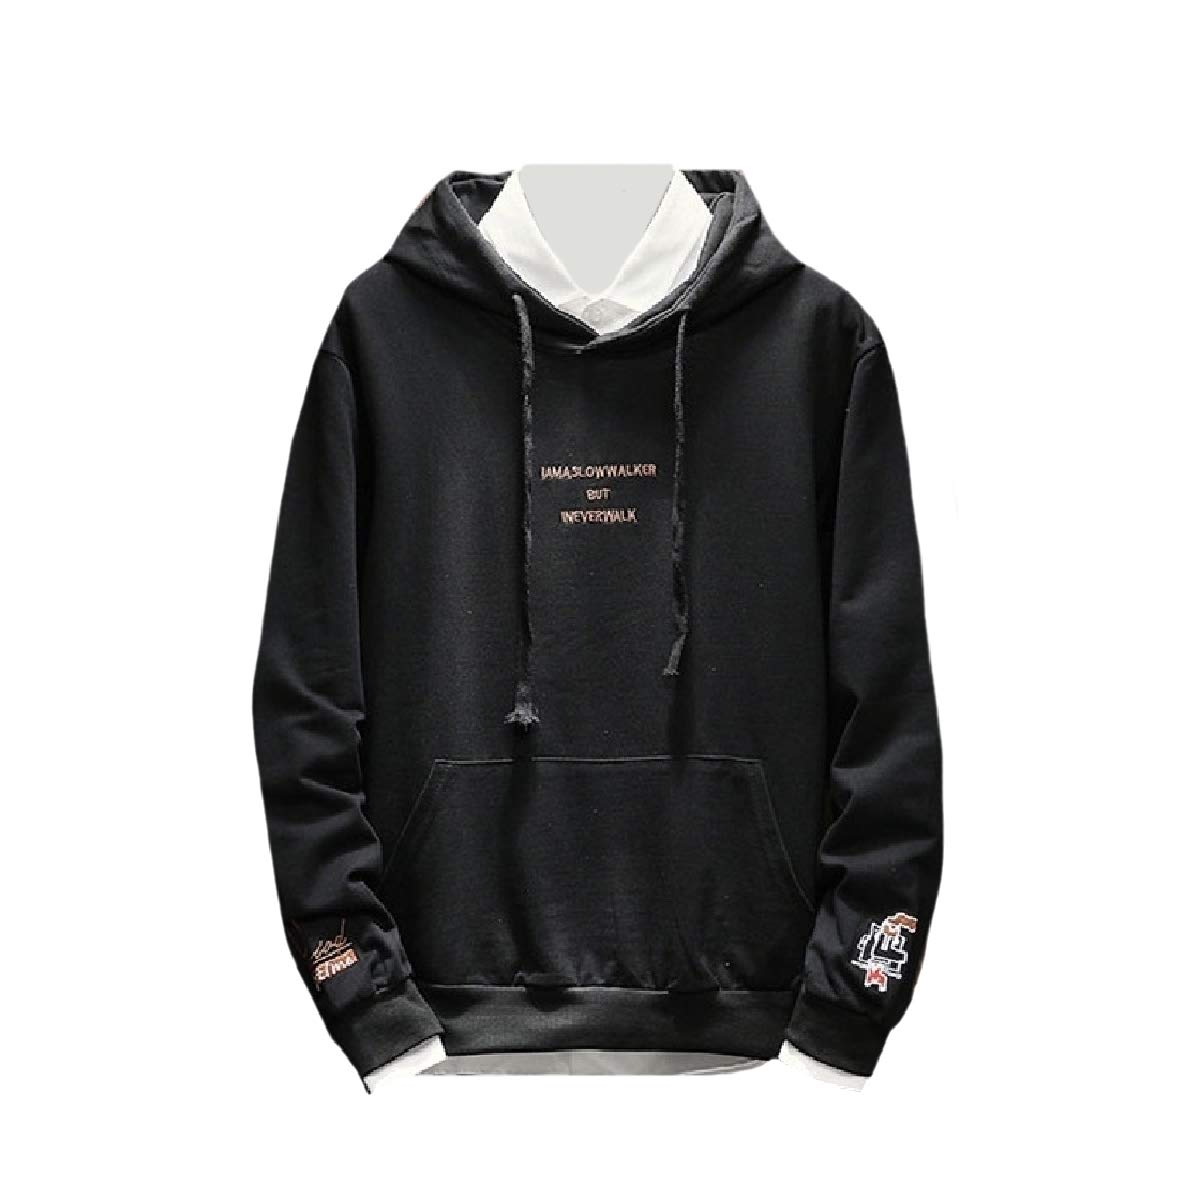 YUNY Mens Long-Sleeve Pullover Pockets Embroidery Hoodies Sweater Black S